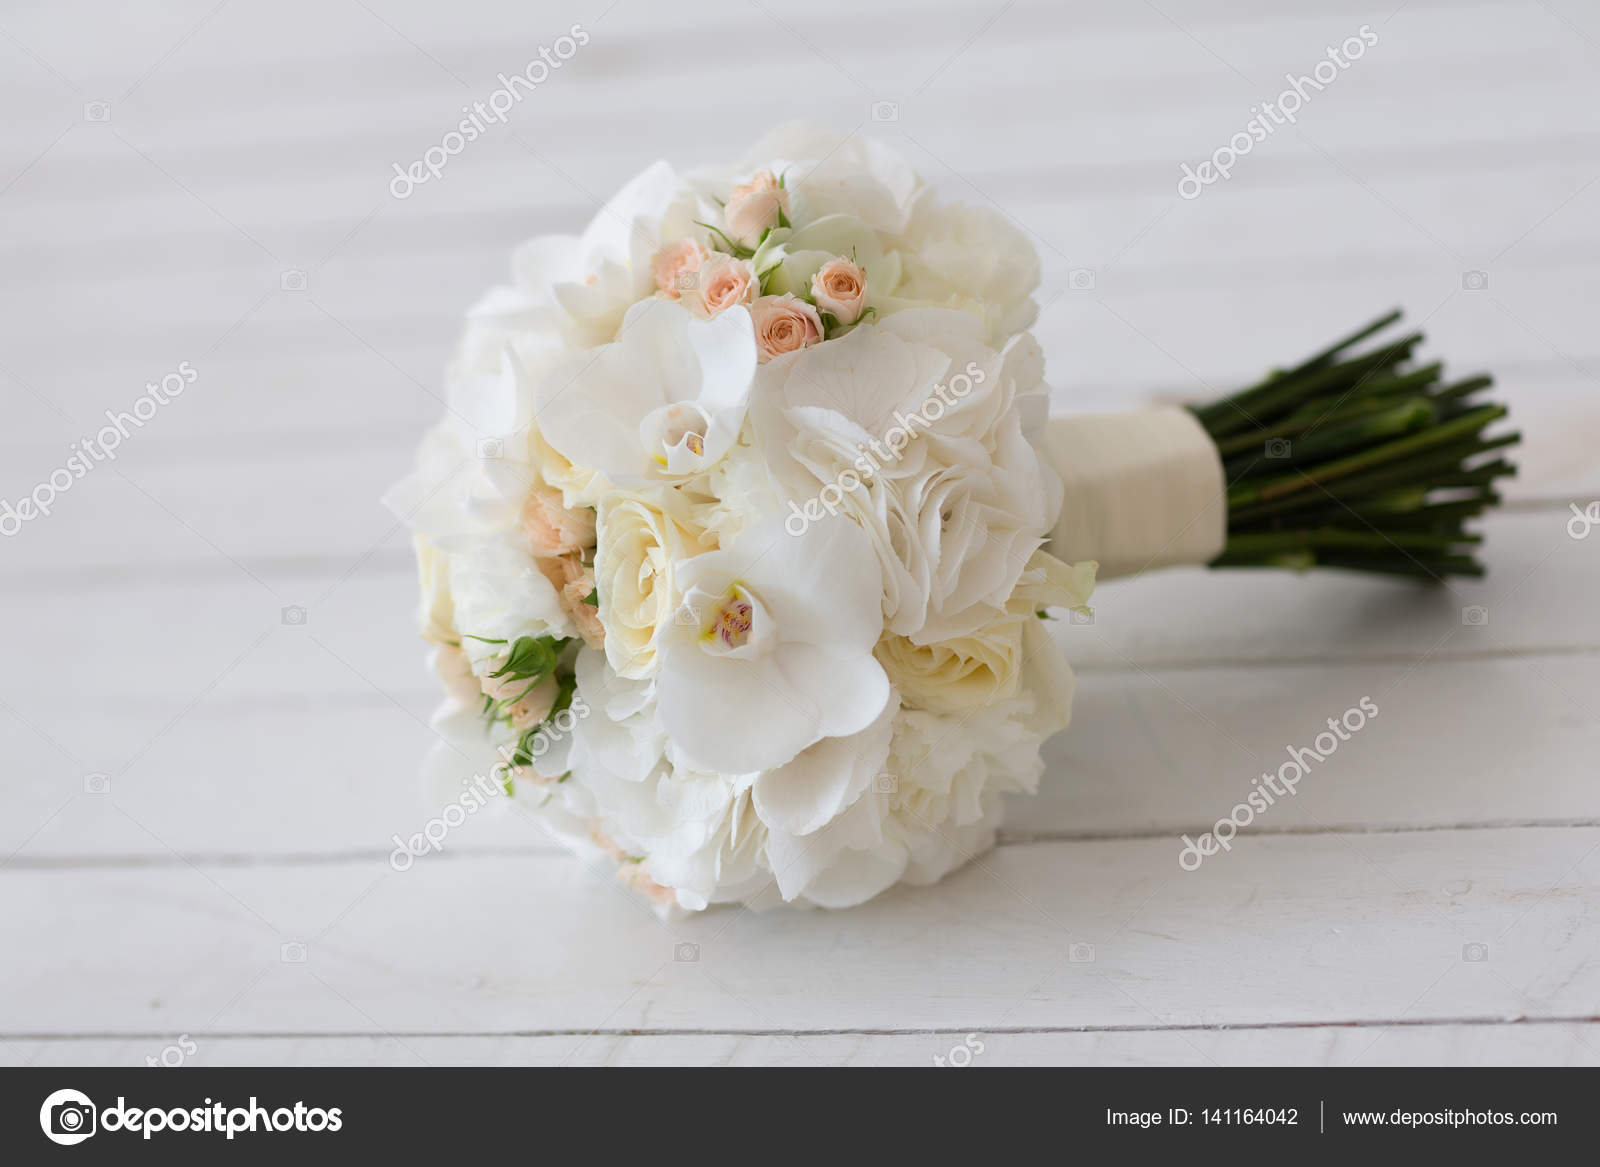 Wedding Bouquet Of White Orchids Stock Photo Zagursky85ail